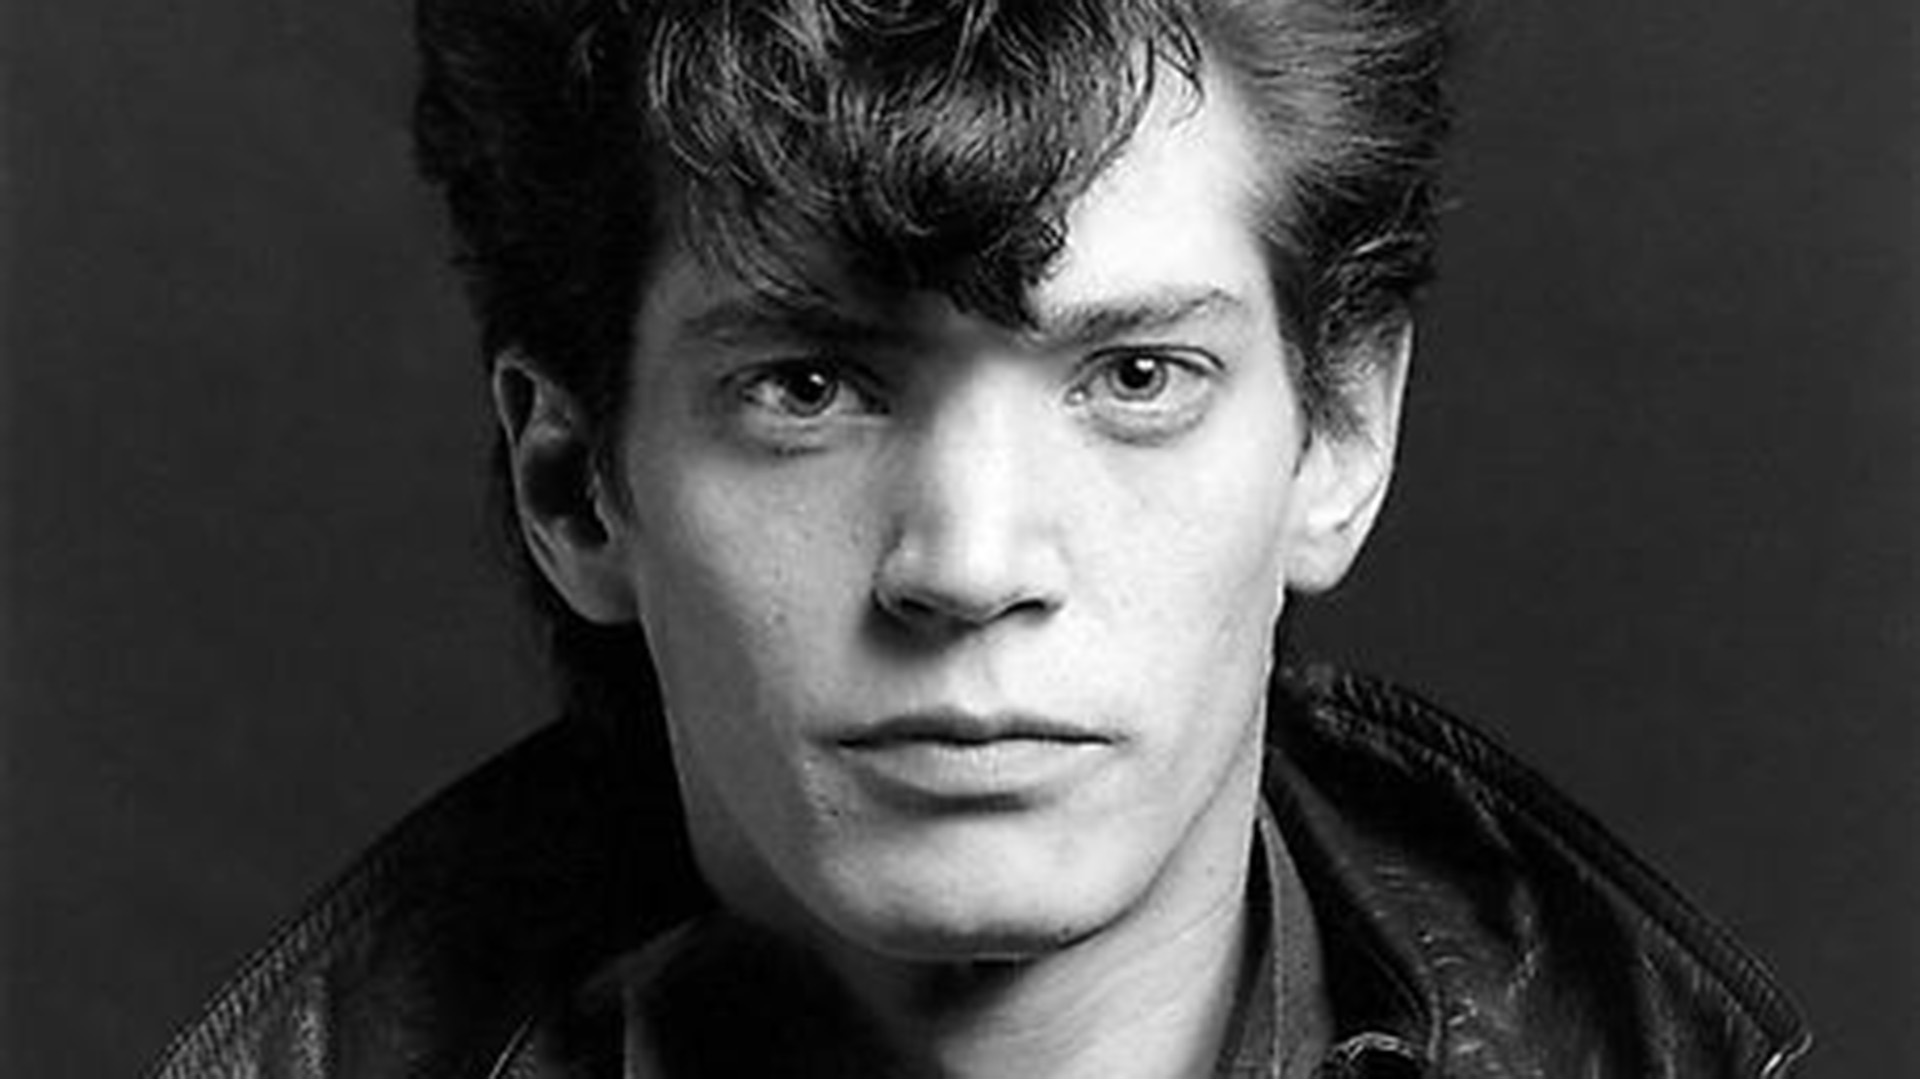 Mapplethorpe murió en 1989